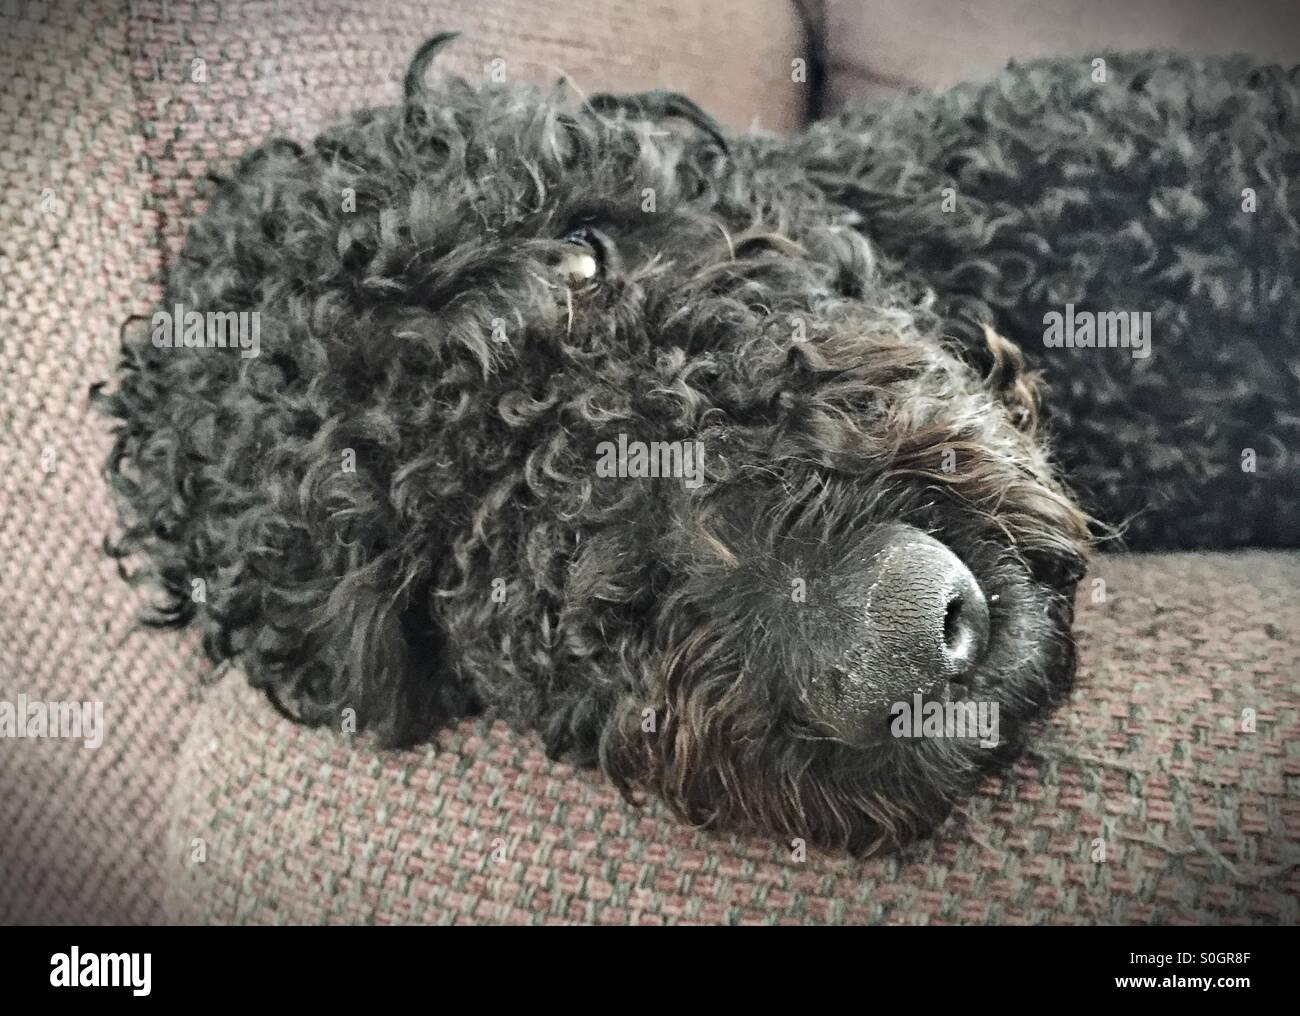 Black curly haired Labradoodle dozing on an armchair - Stock Image